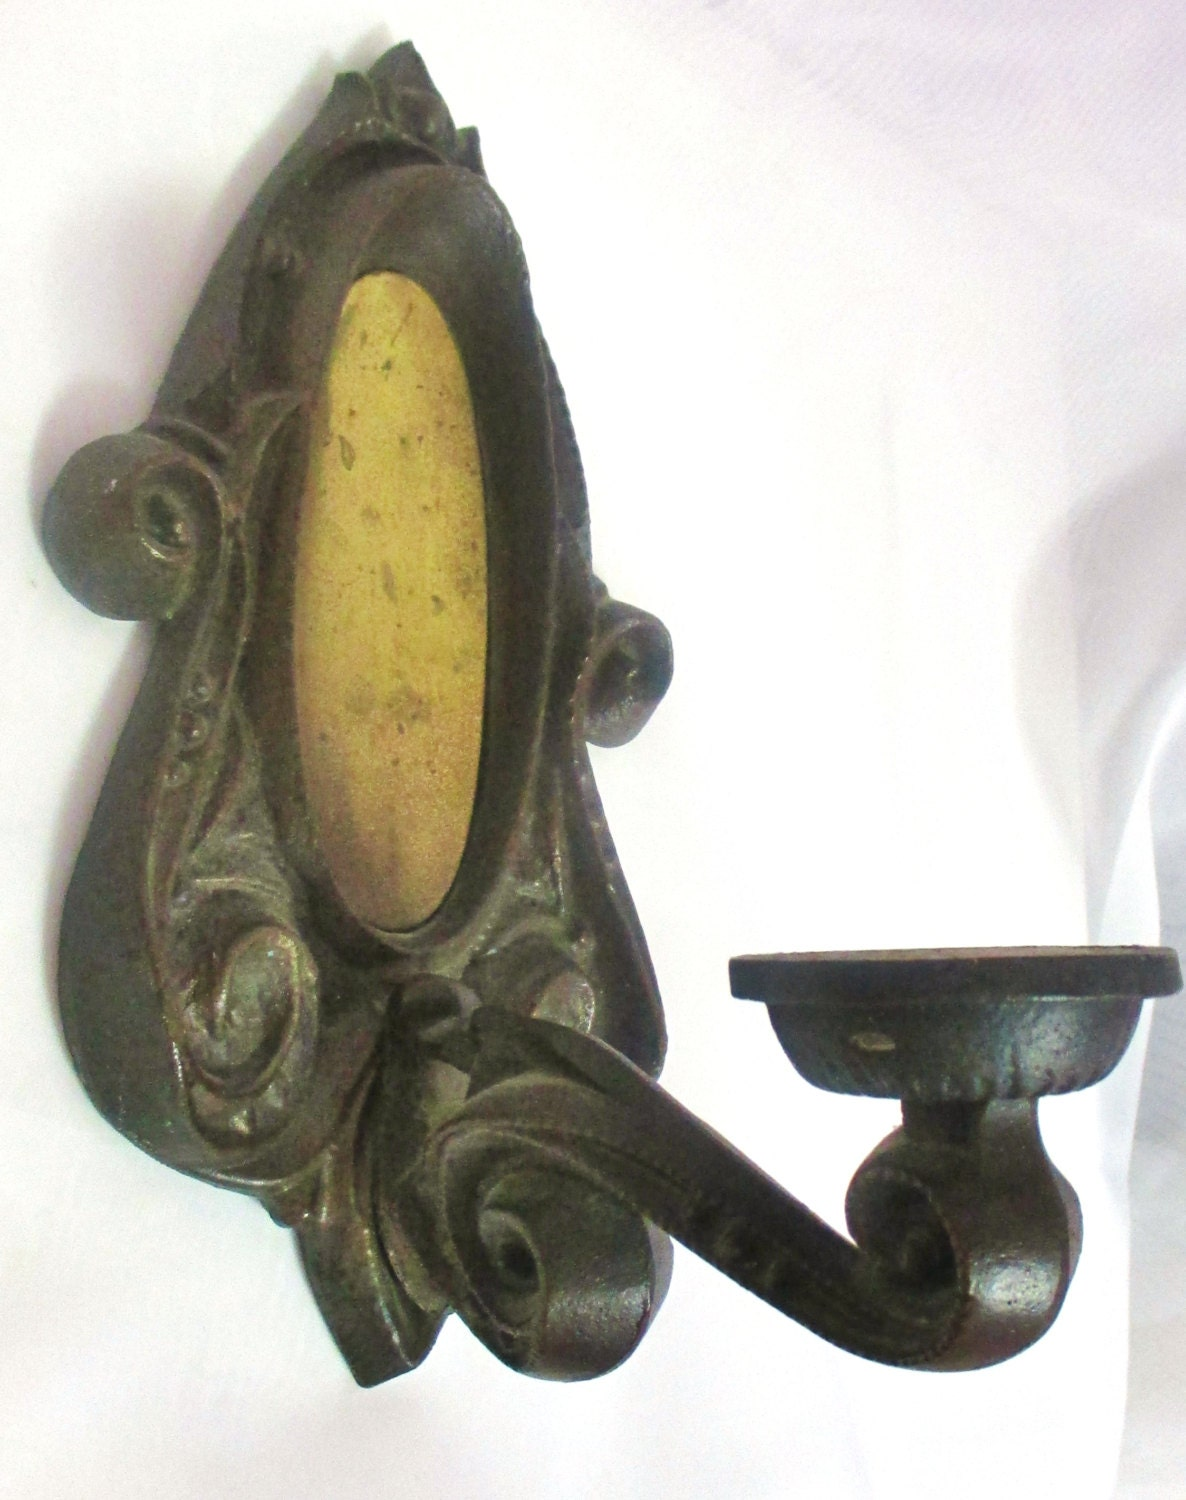 Iron Candle Holder Wall Sconce : Antique Cast Iron Wall Sconce Candle Holder/ by District66Antiques